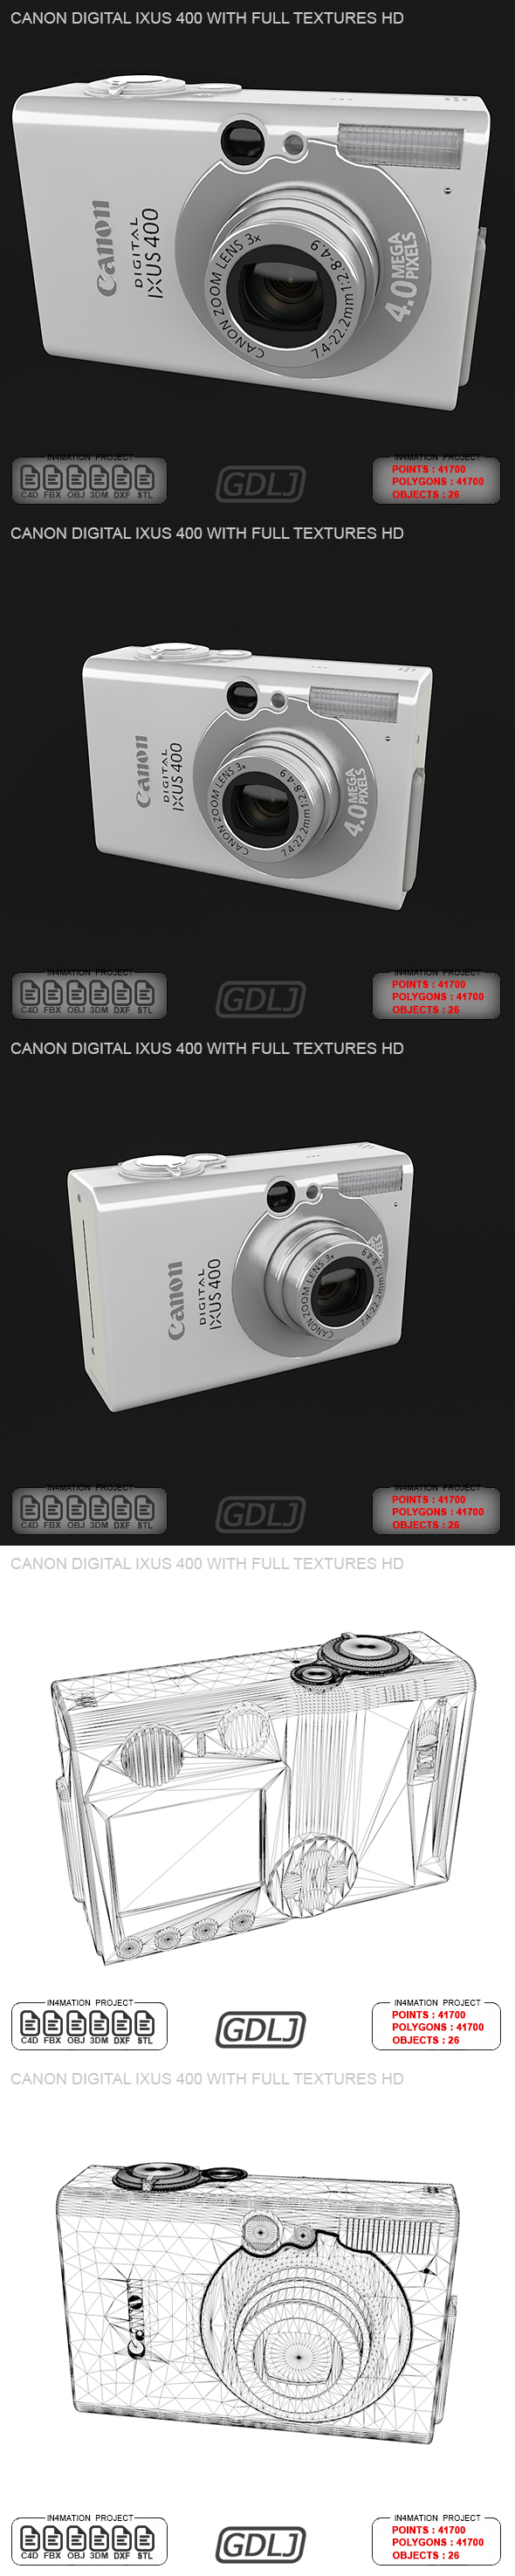 Canon Digital IXUS 400 with FULL Textures HD - 3DOcean Item for Sale